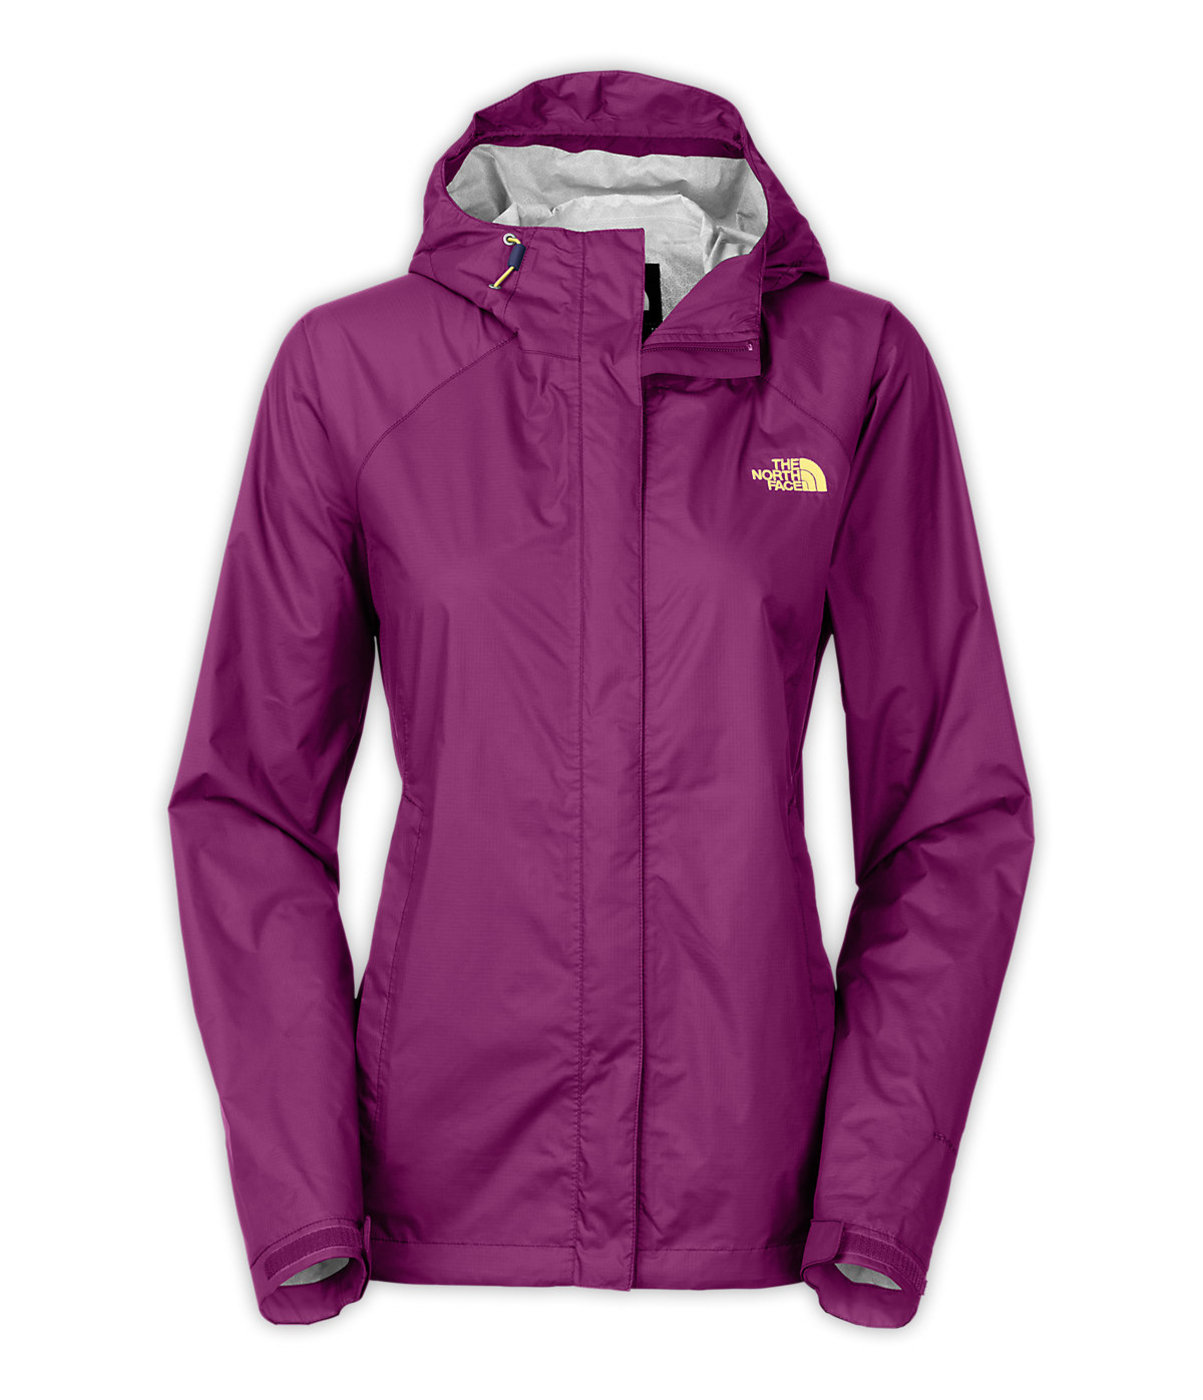 North face womens venture rain jacket